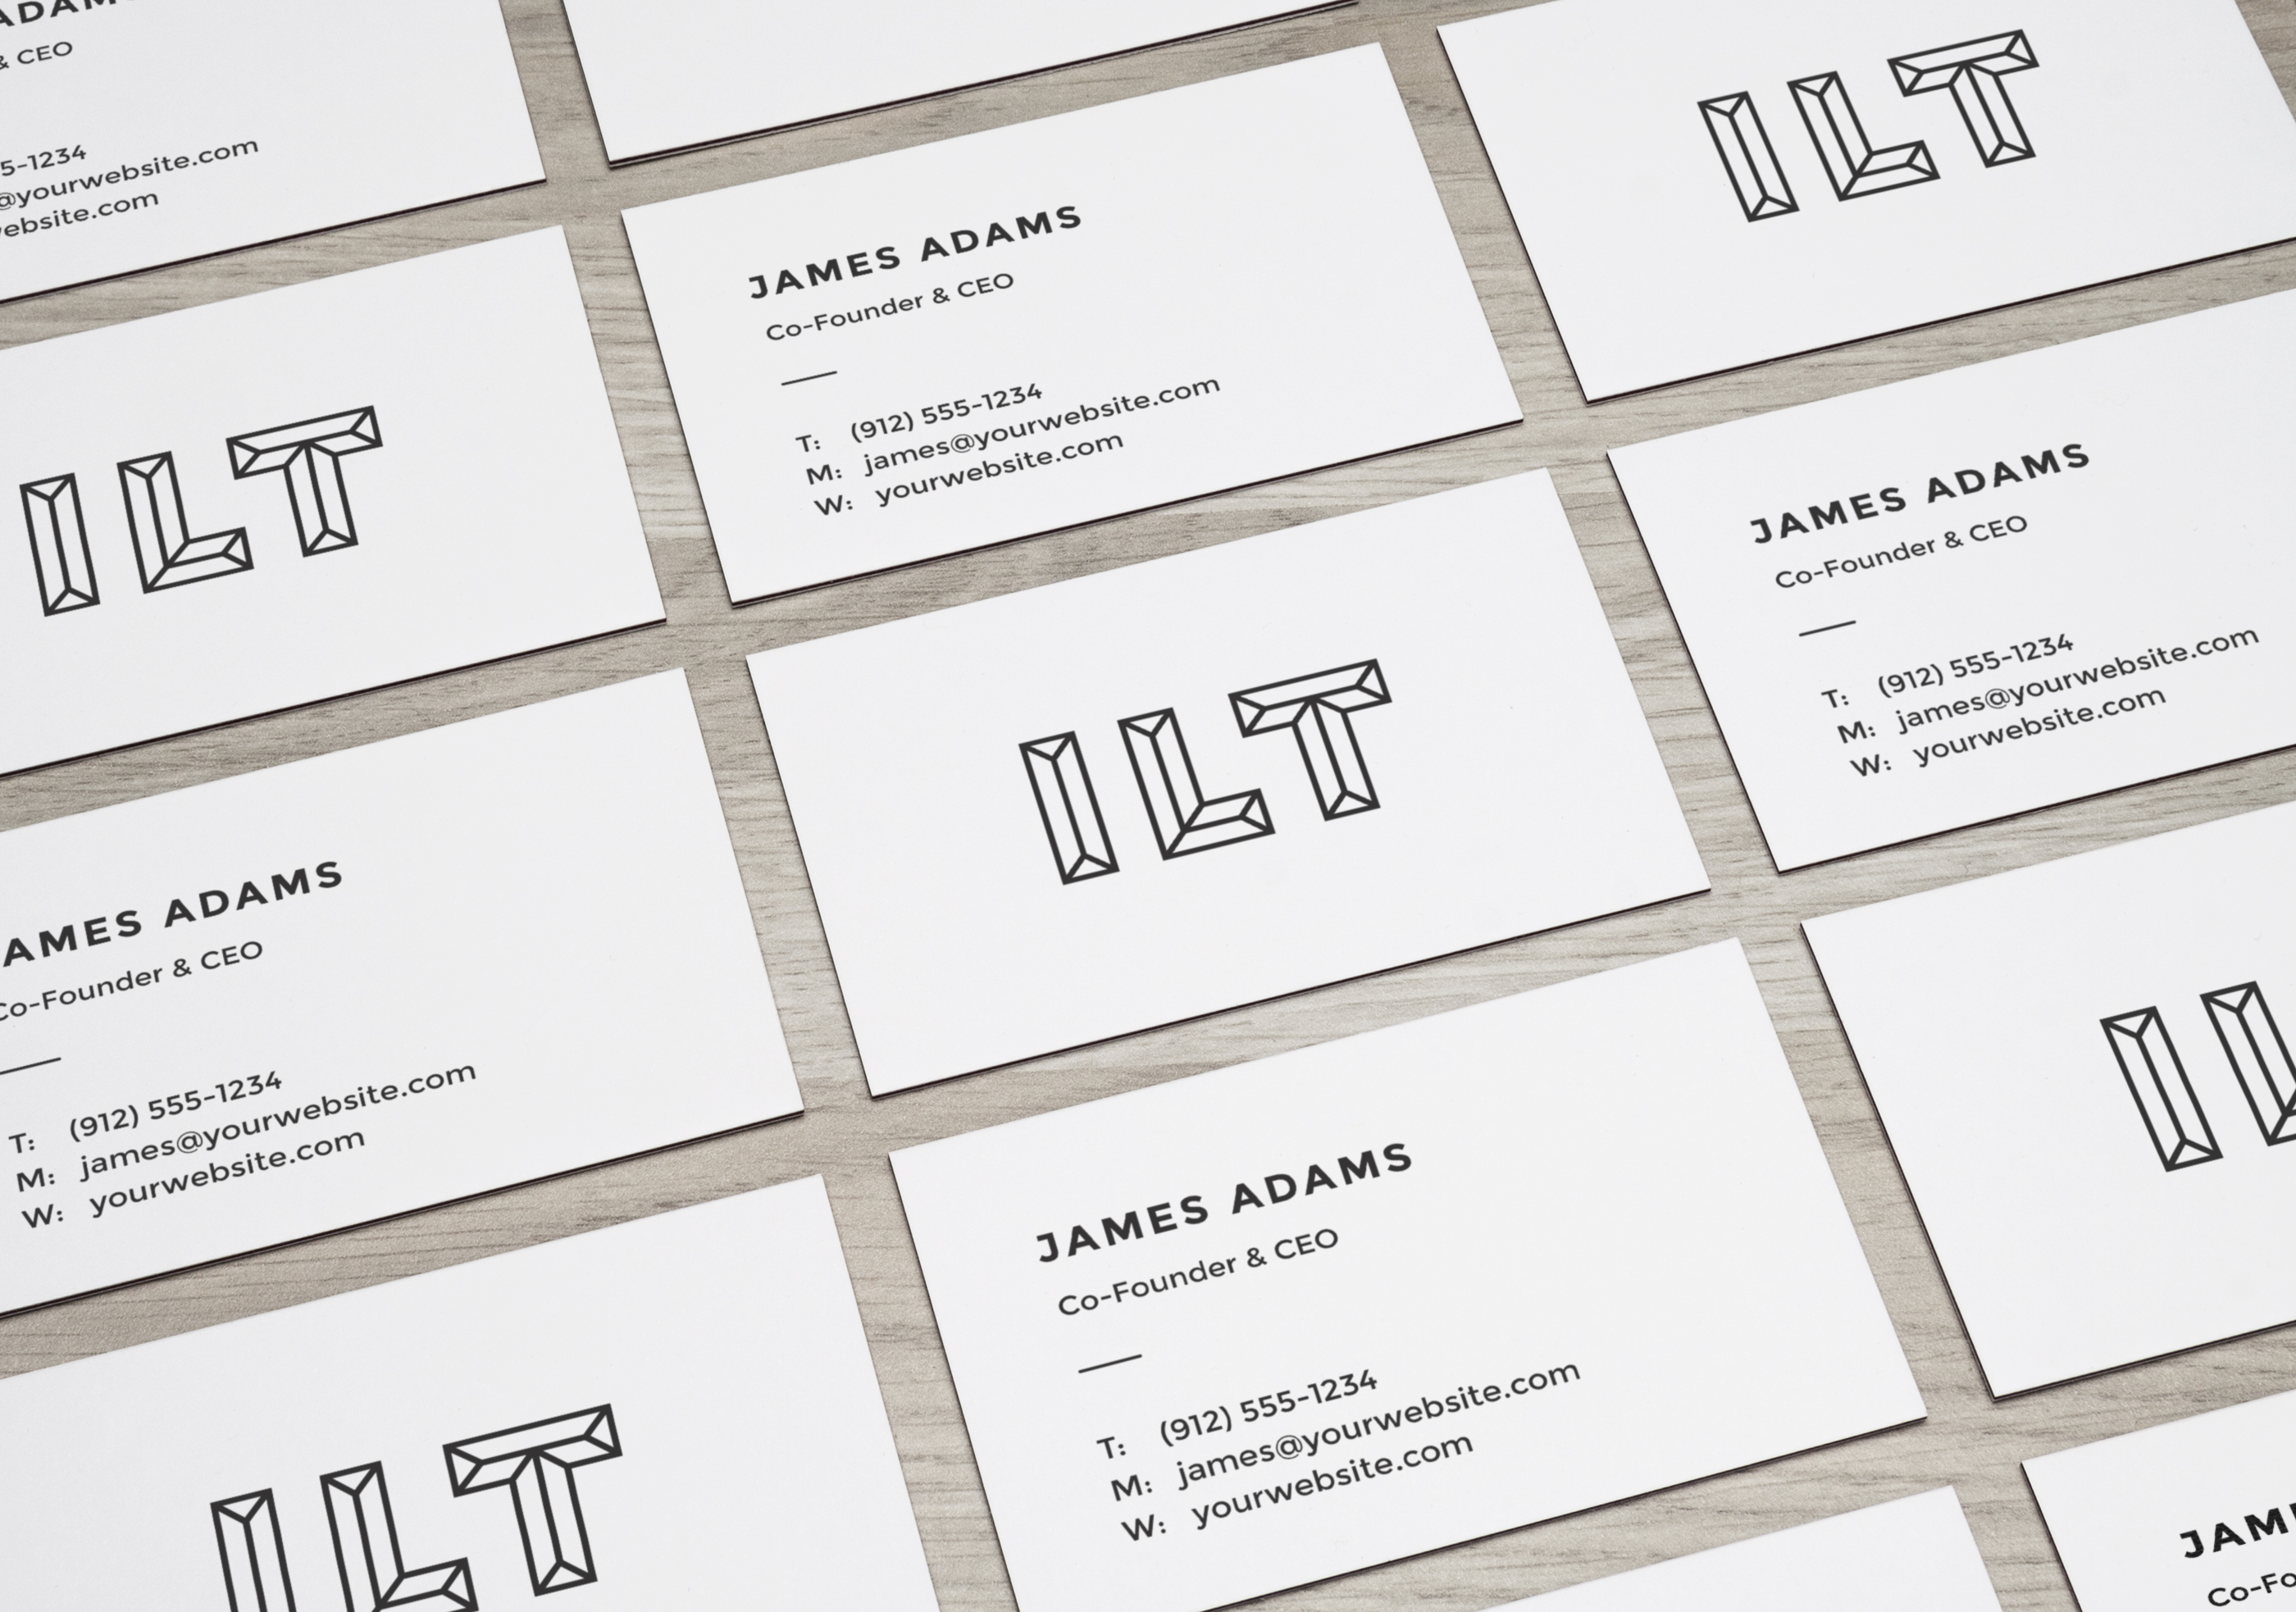 Perspective business cards mockup pafpic an elegant business card mock up that provides you with a perspective view showcase the psd file comes with smart layers that permit an easy drag and drop reheart Images